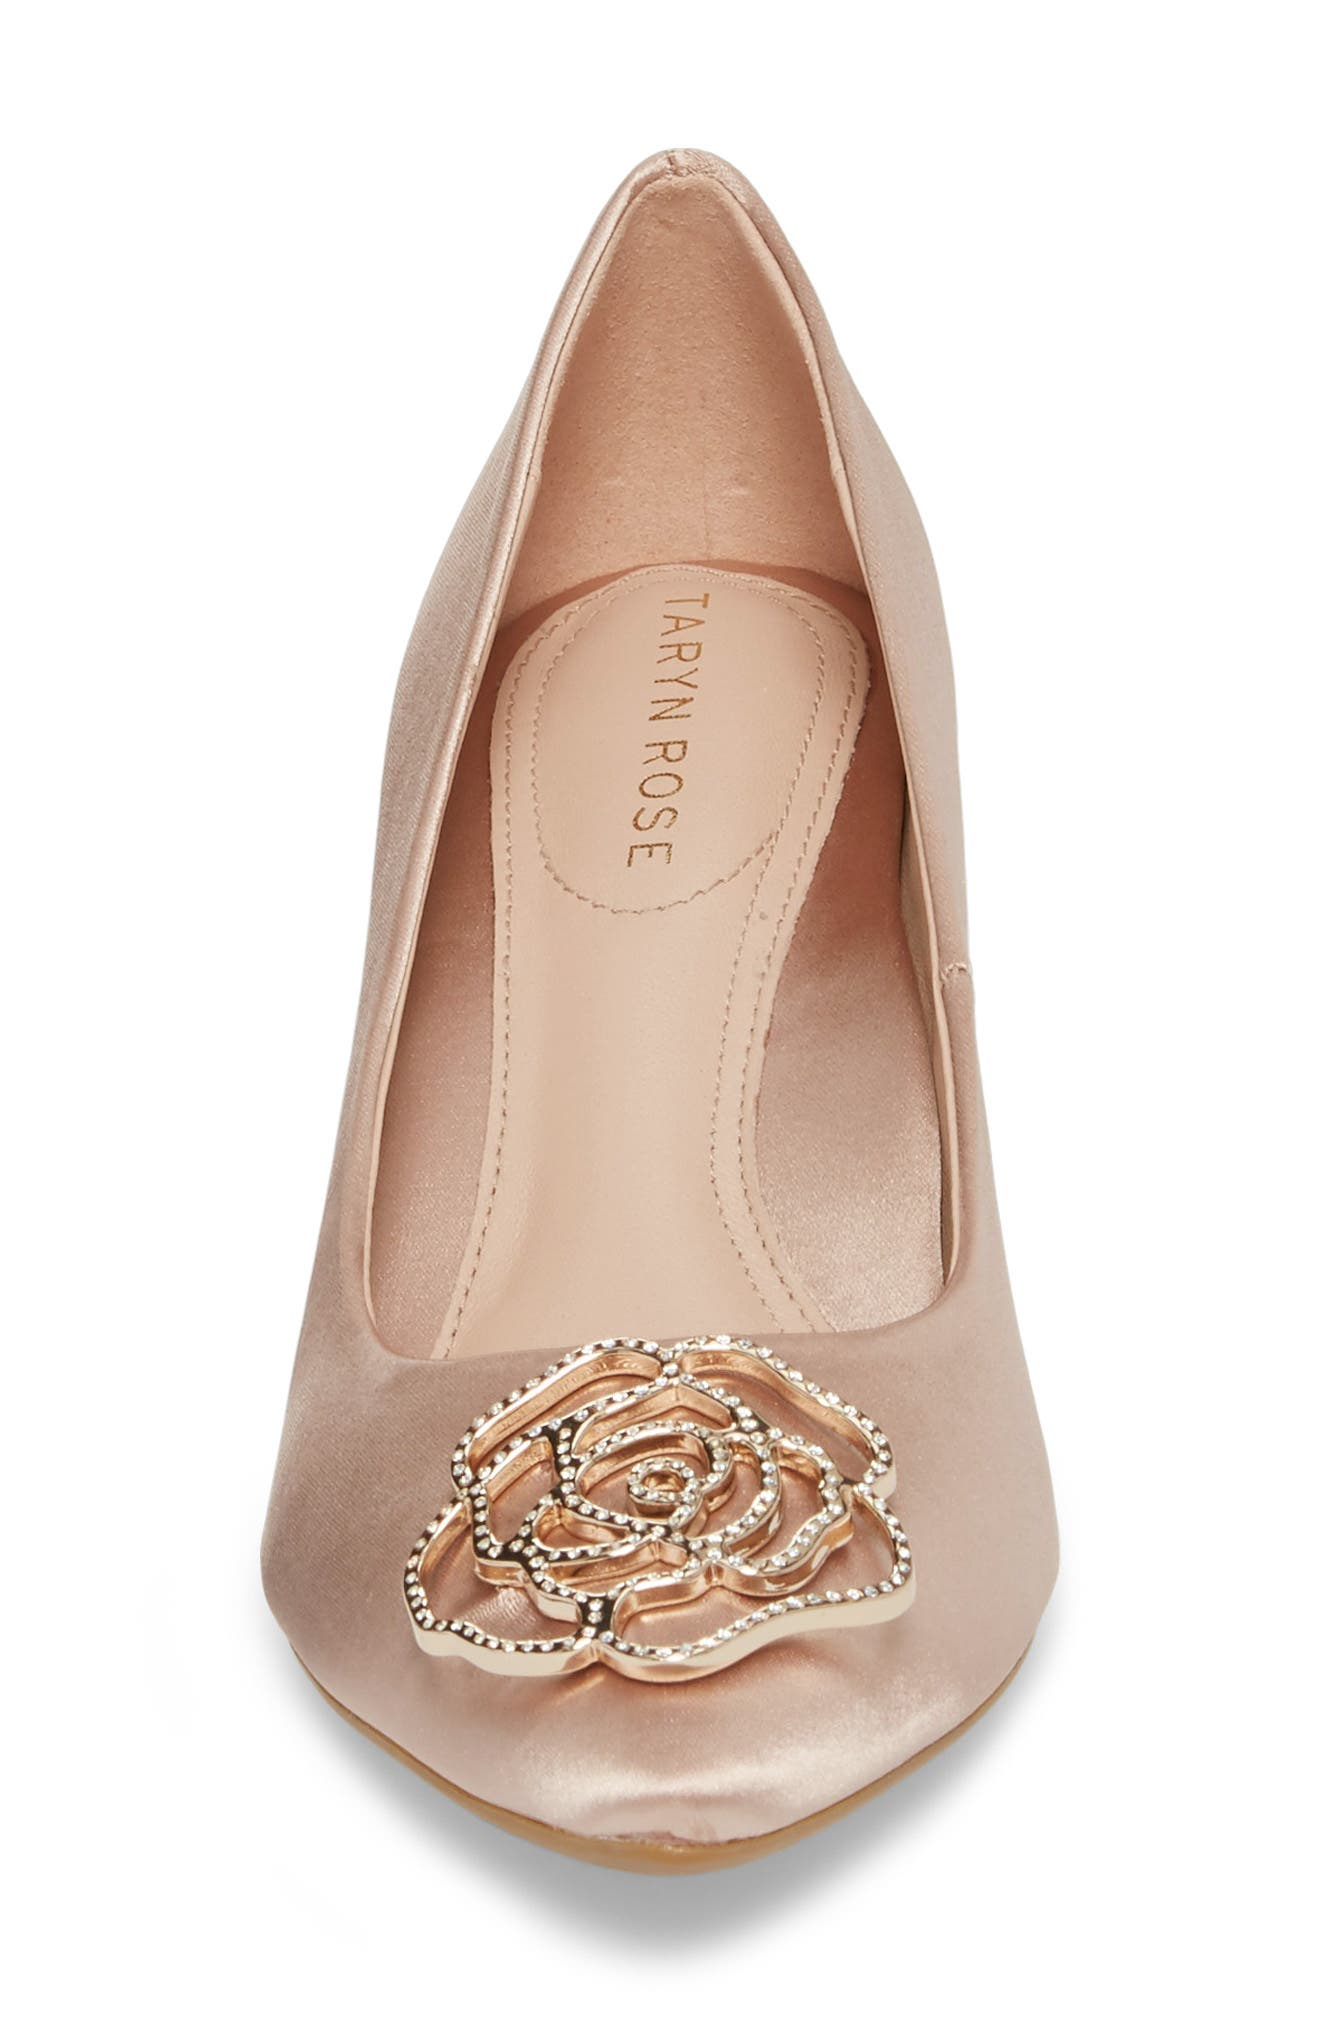 Maci Pump,                             Alternate thumbnail 4, color,                             Blush Satin Fabric